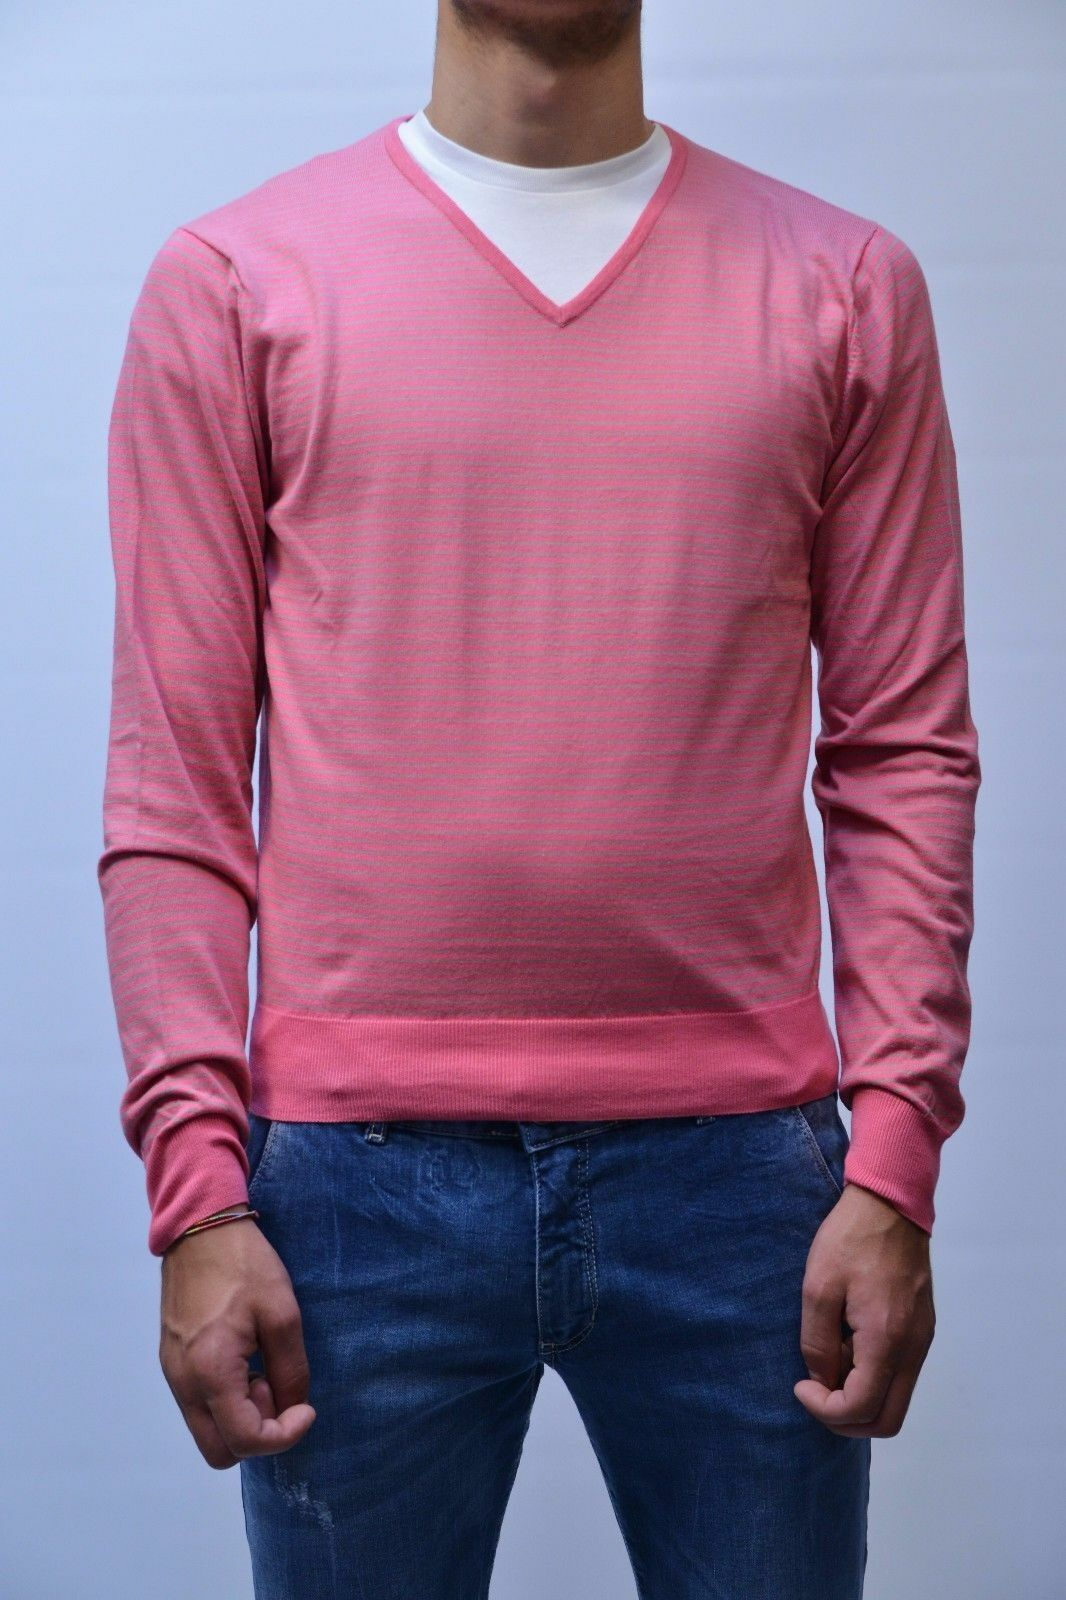 MAGLIA BECOME  - 50% hommes chandail JERSEY 529039 RIGHE2 MIS.54 PP